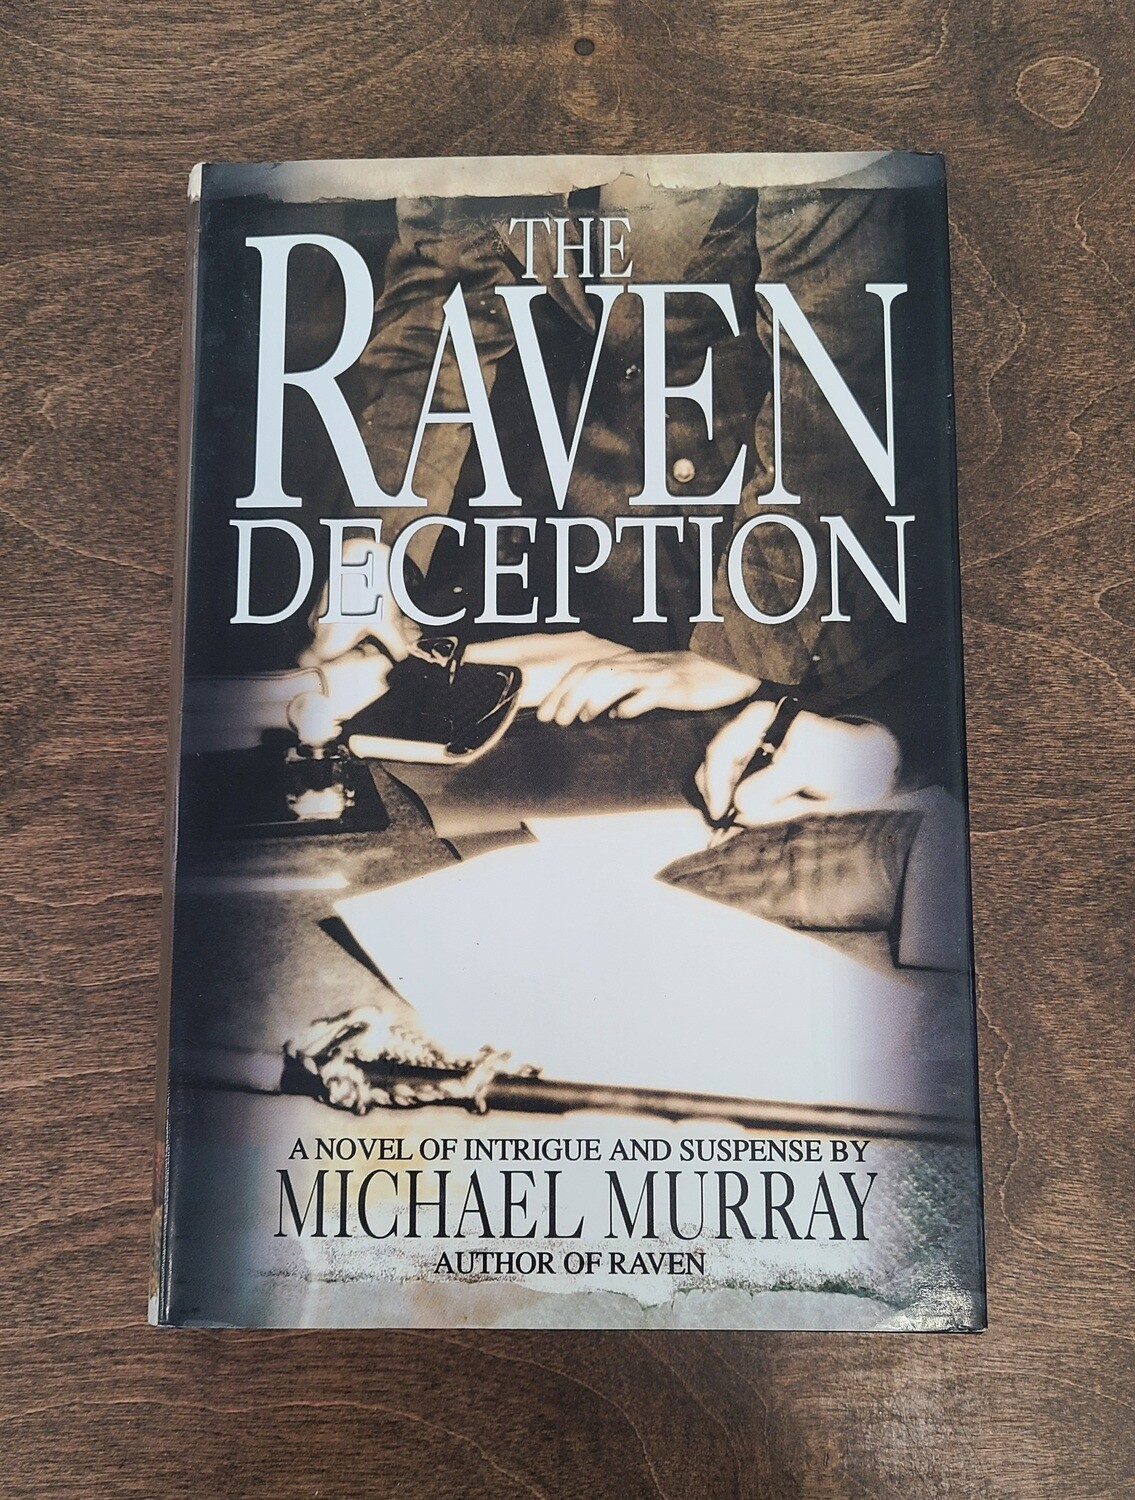 The Raven Deception by Michael Murray